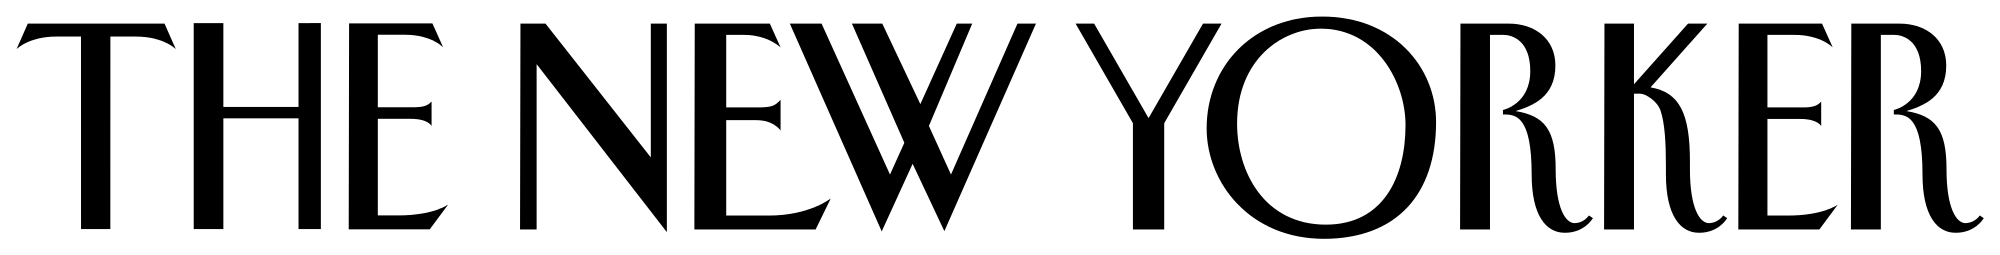 The new yorker logo png